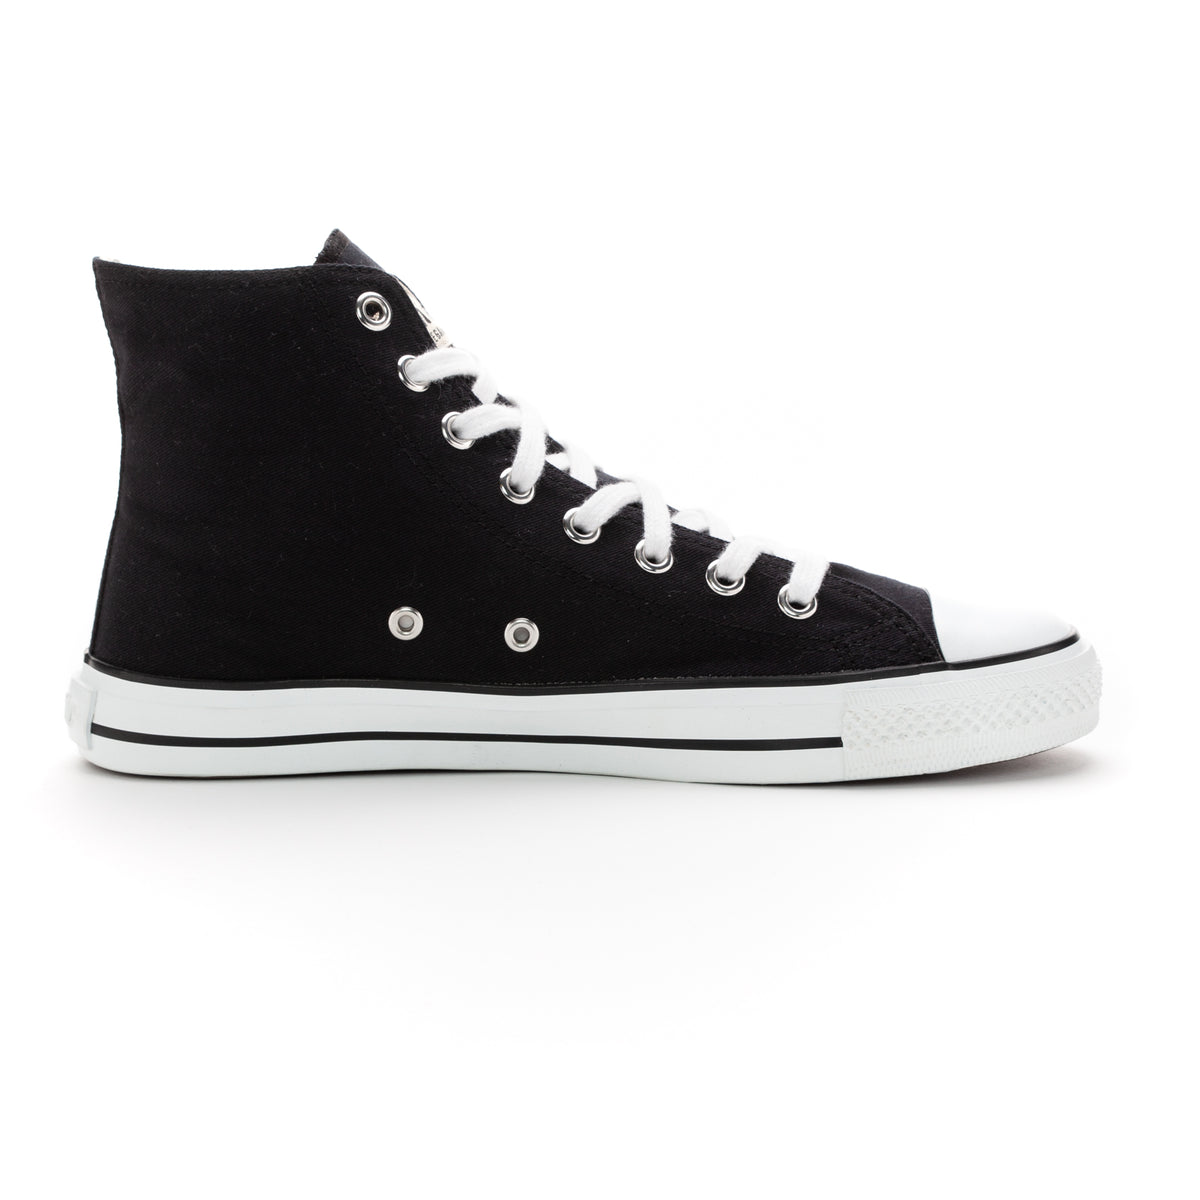 Fair Trainer White Cap Hi Cut Jet Black | ETHLETICS